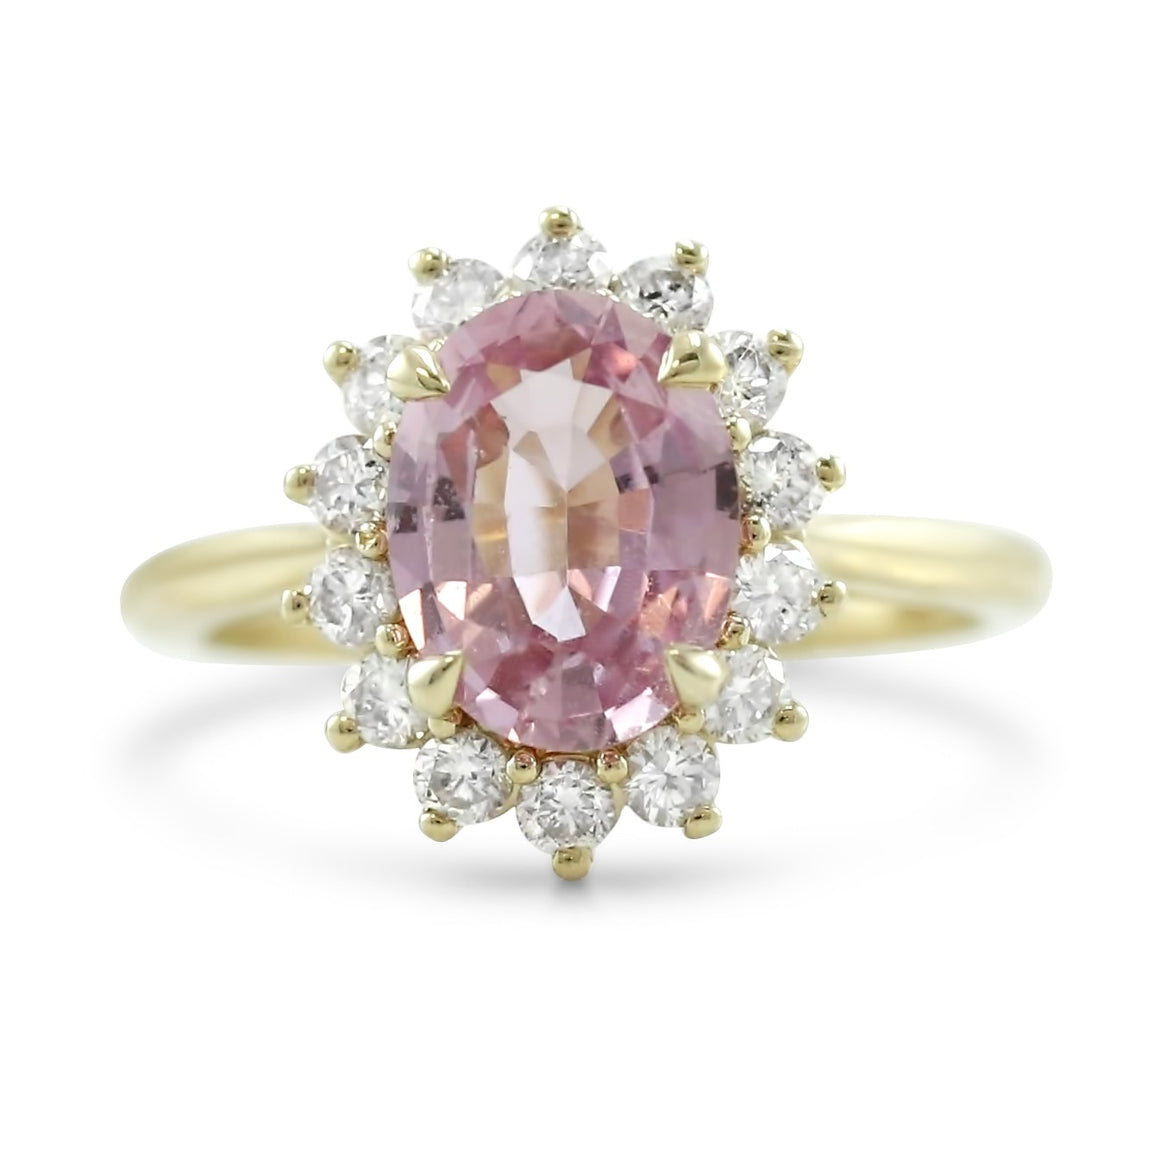 oval pink sapphire prong set engagement ring with a diamond halo 14k yellow gold